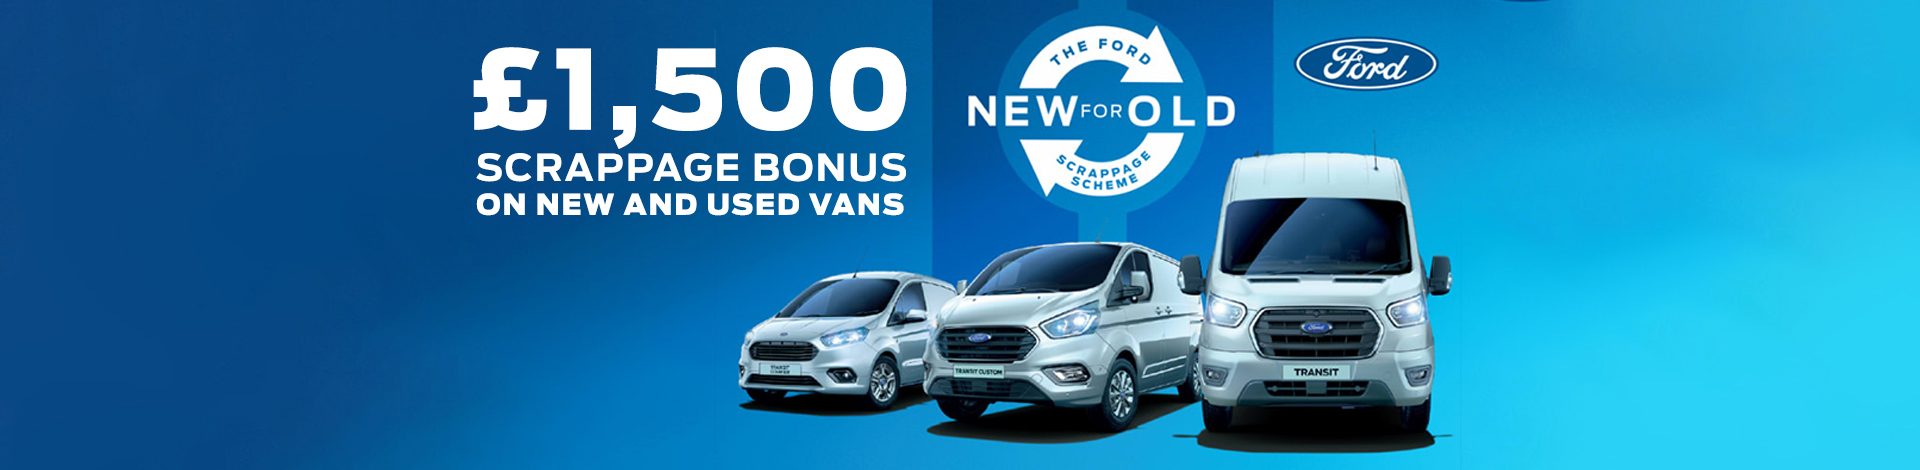 2020 Vans Scrappage Scheme with £1,500 allowance available on New & Used vans